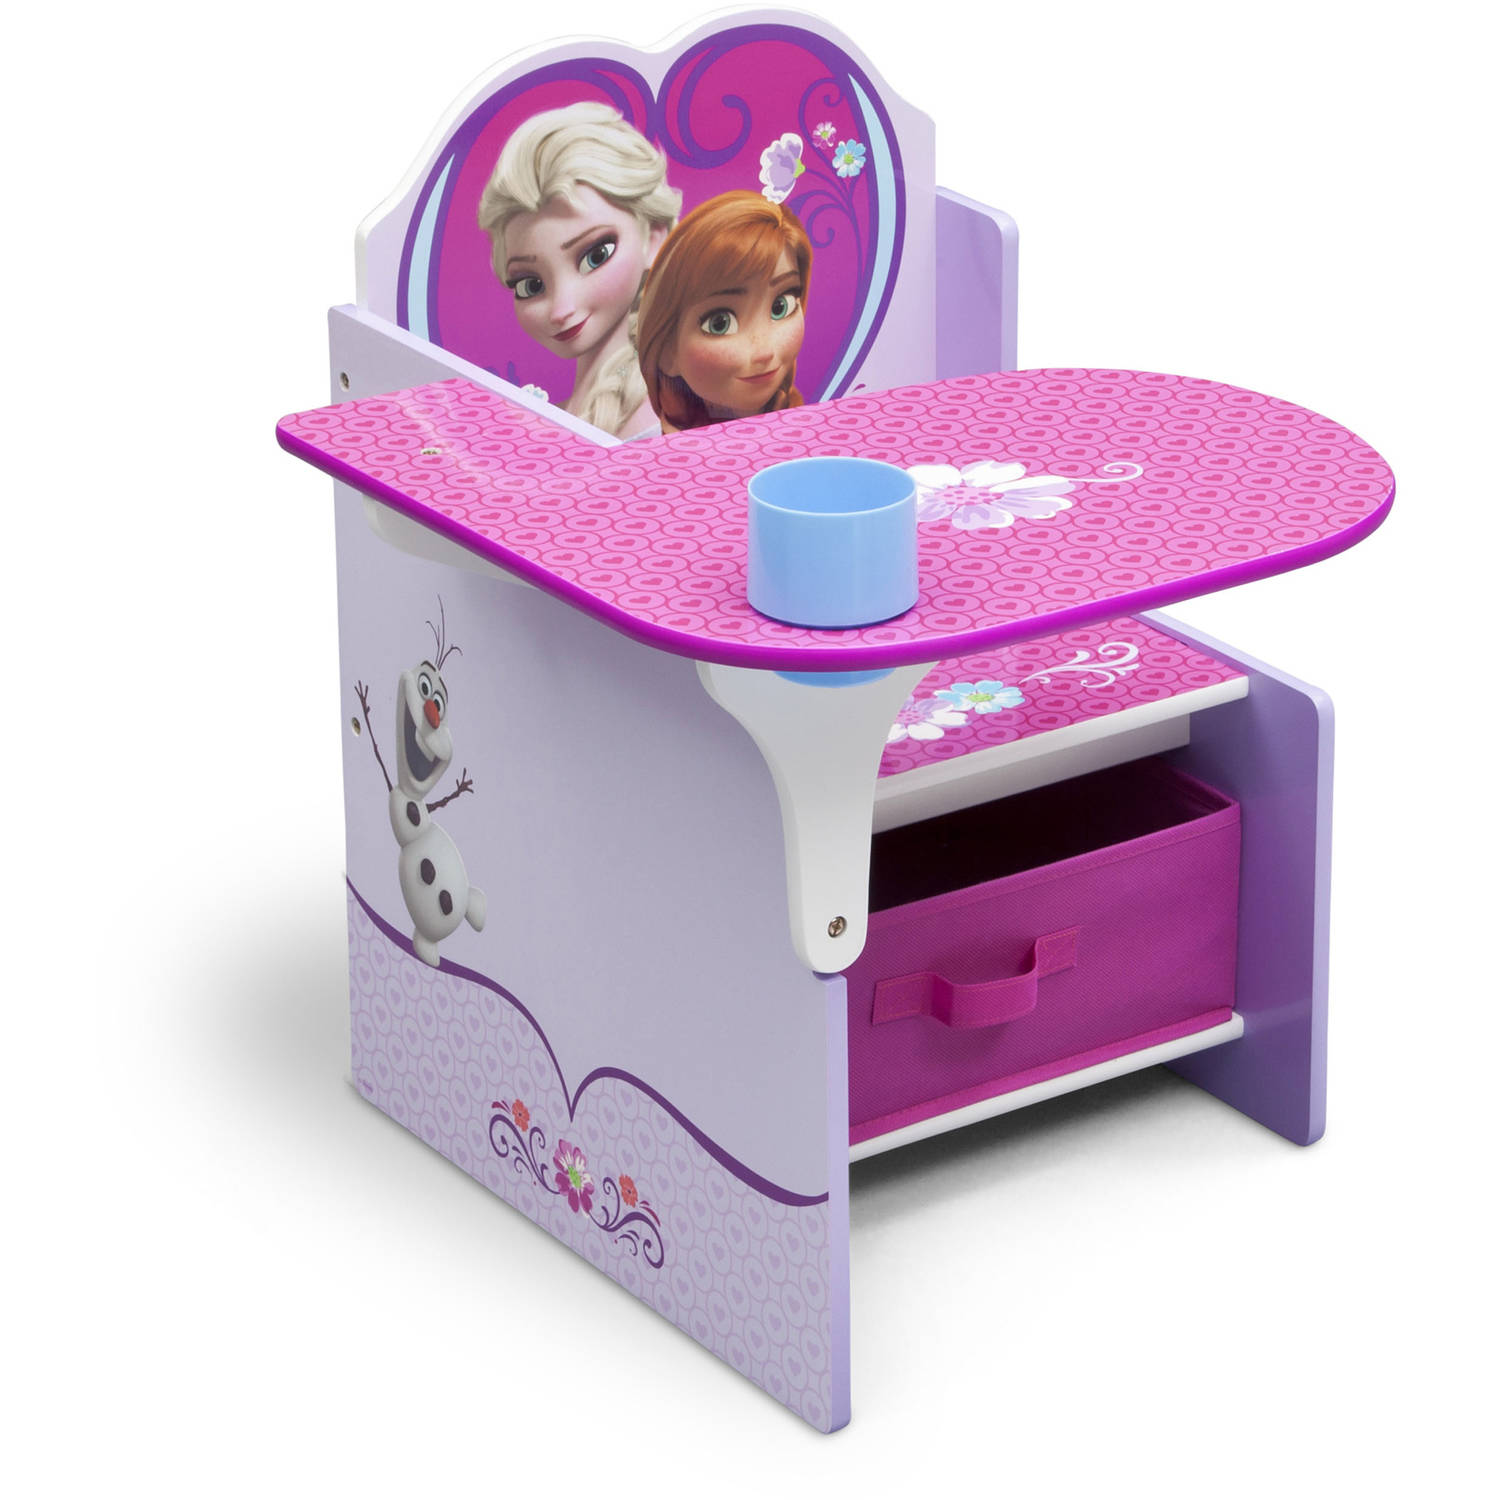 Delta Children Frozen Chair Desk with Storage Bin Walmart – Girls Table and Chair